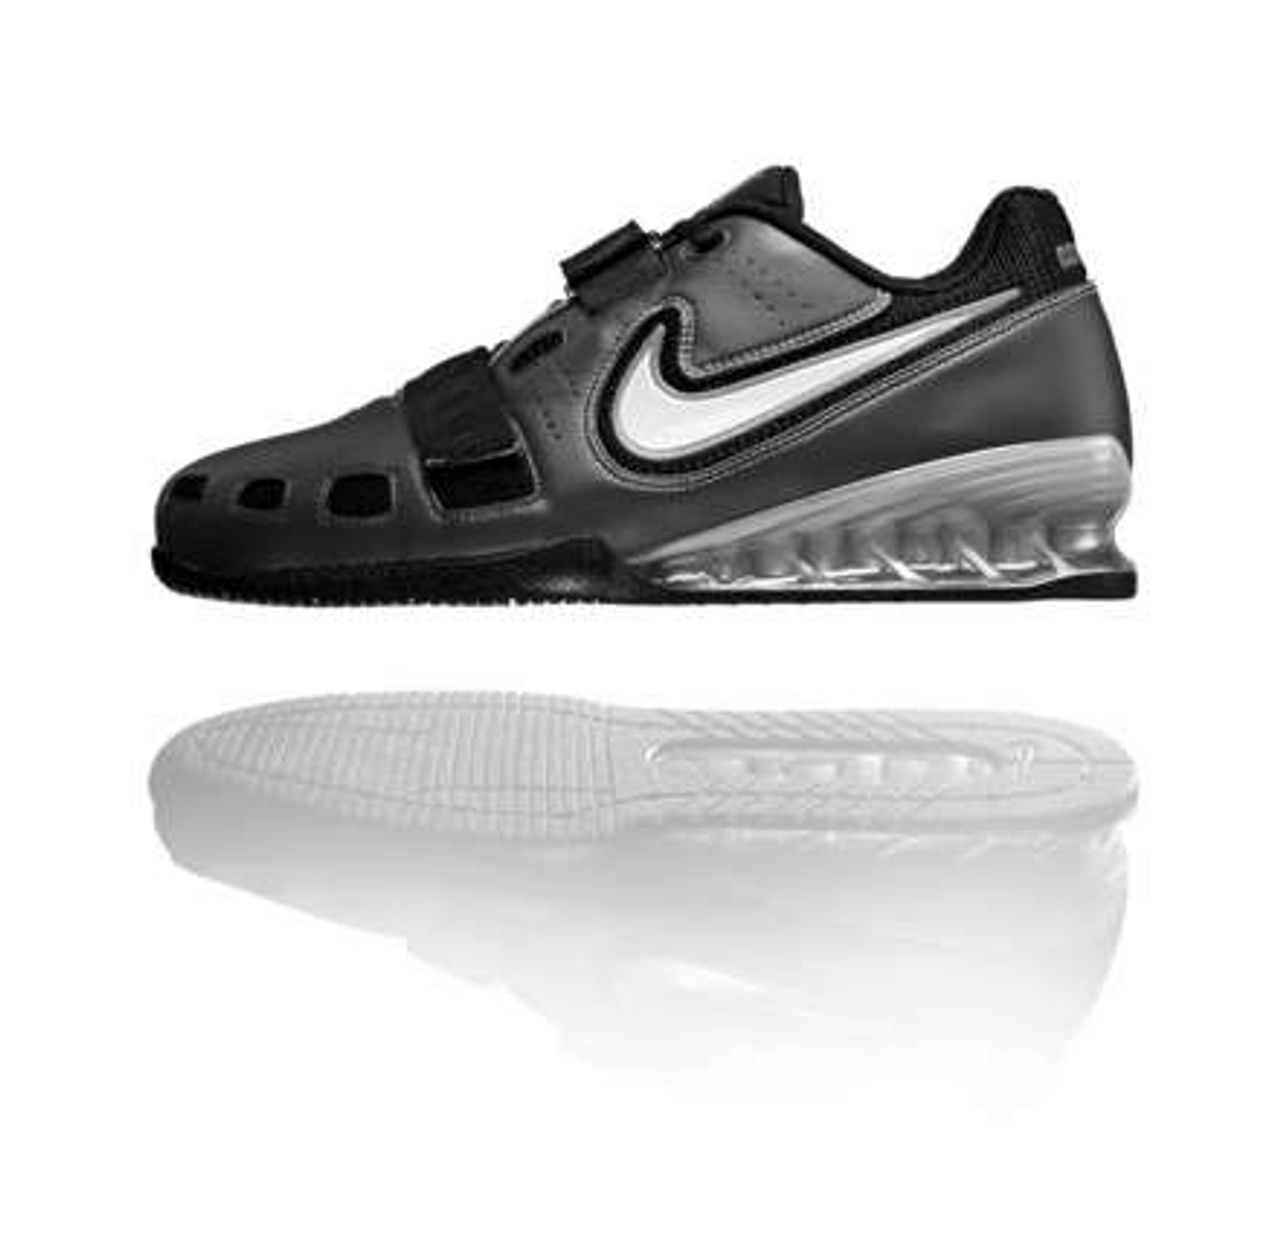 112ee713c7d73 Nike Romaleos 2 Weightlifting Shoes - Black   White   Grey